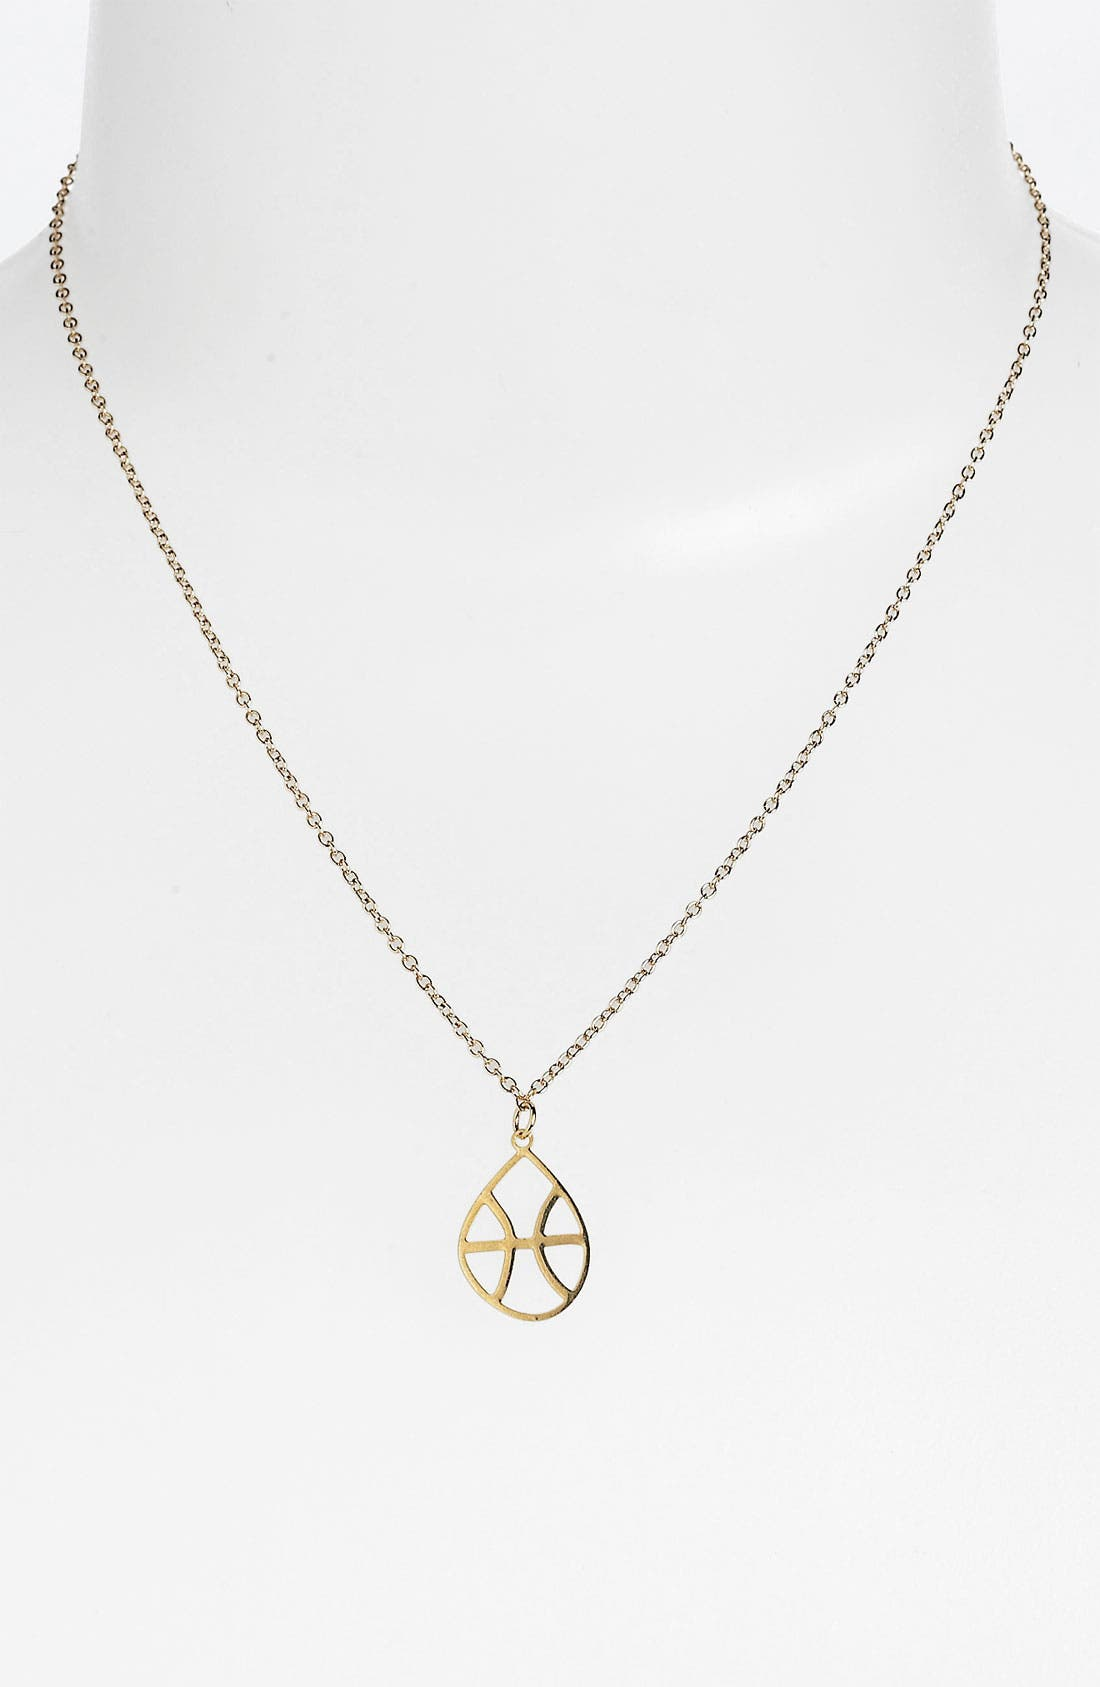 Main Image - Kris Nations 'Pisces' Necklace